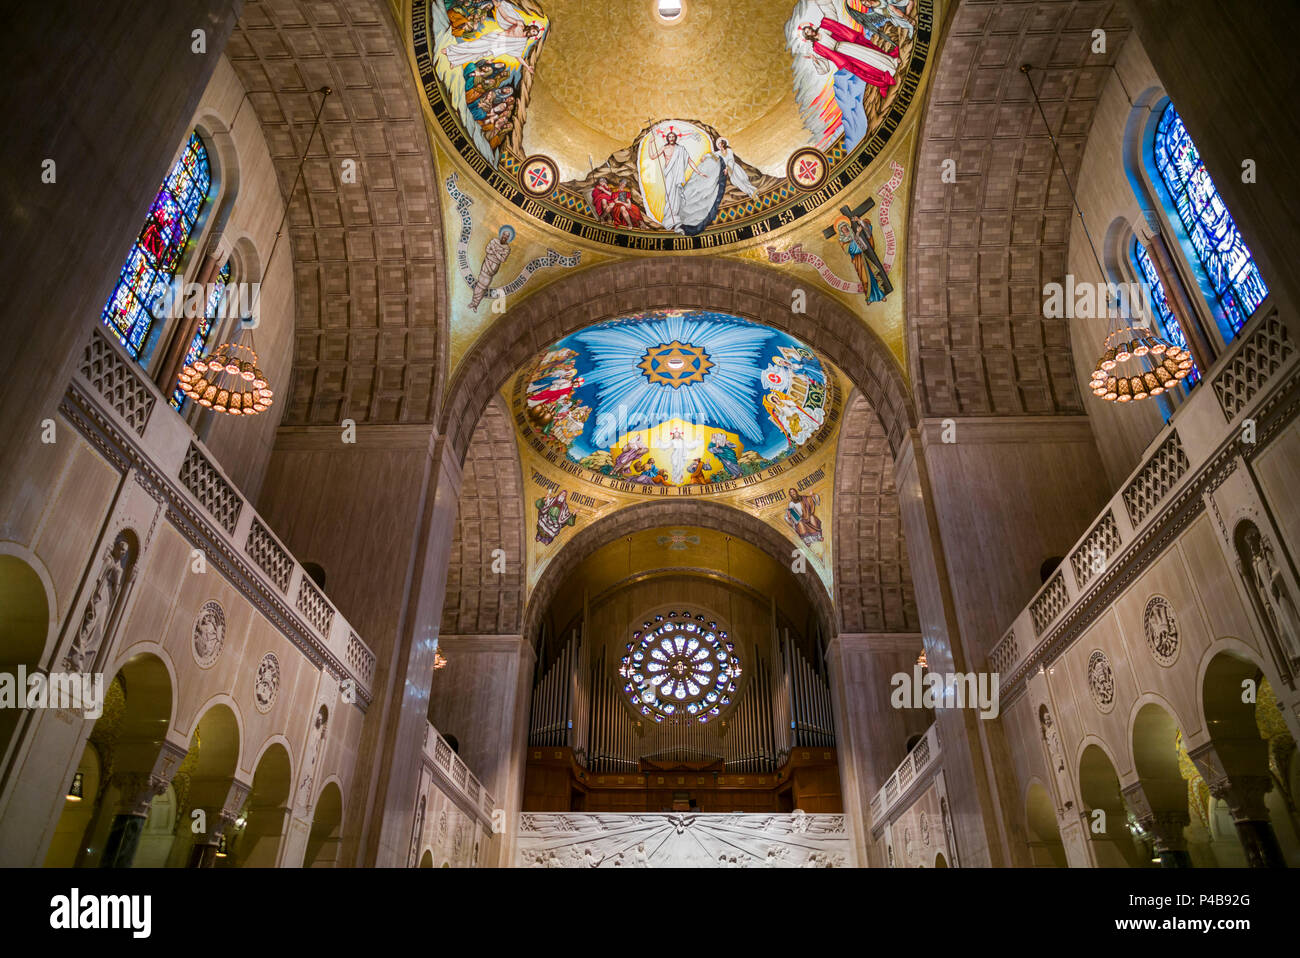 USA, District of Columbia, Washington, Basilica of the National Shrine of the Immaculate Conception, interior Stock Photo